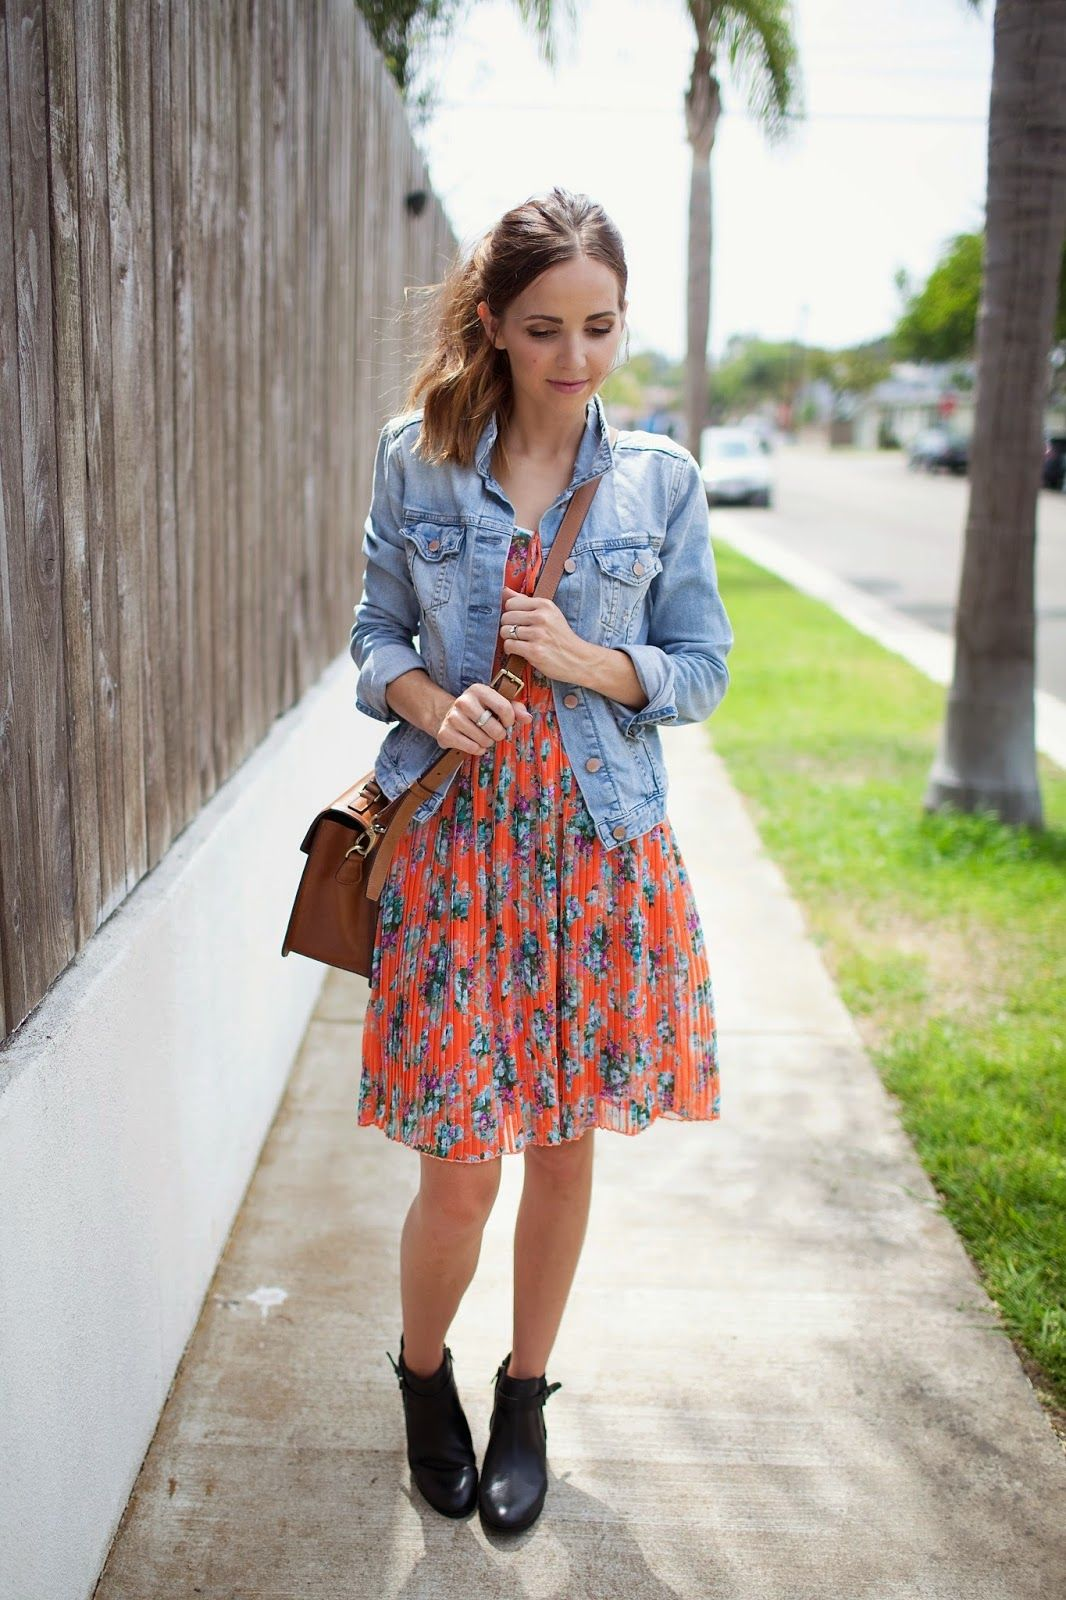 Merrick S Art Style Sewing For The Everyday 3 Ways To Wear Your Ankle Boots During Summer